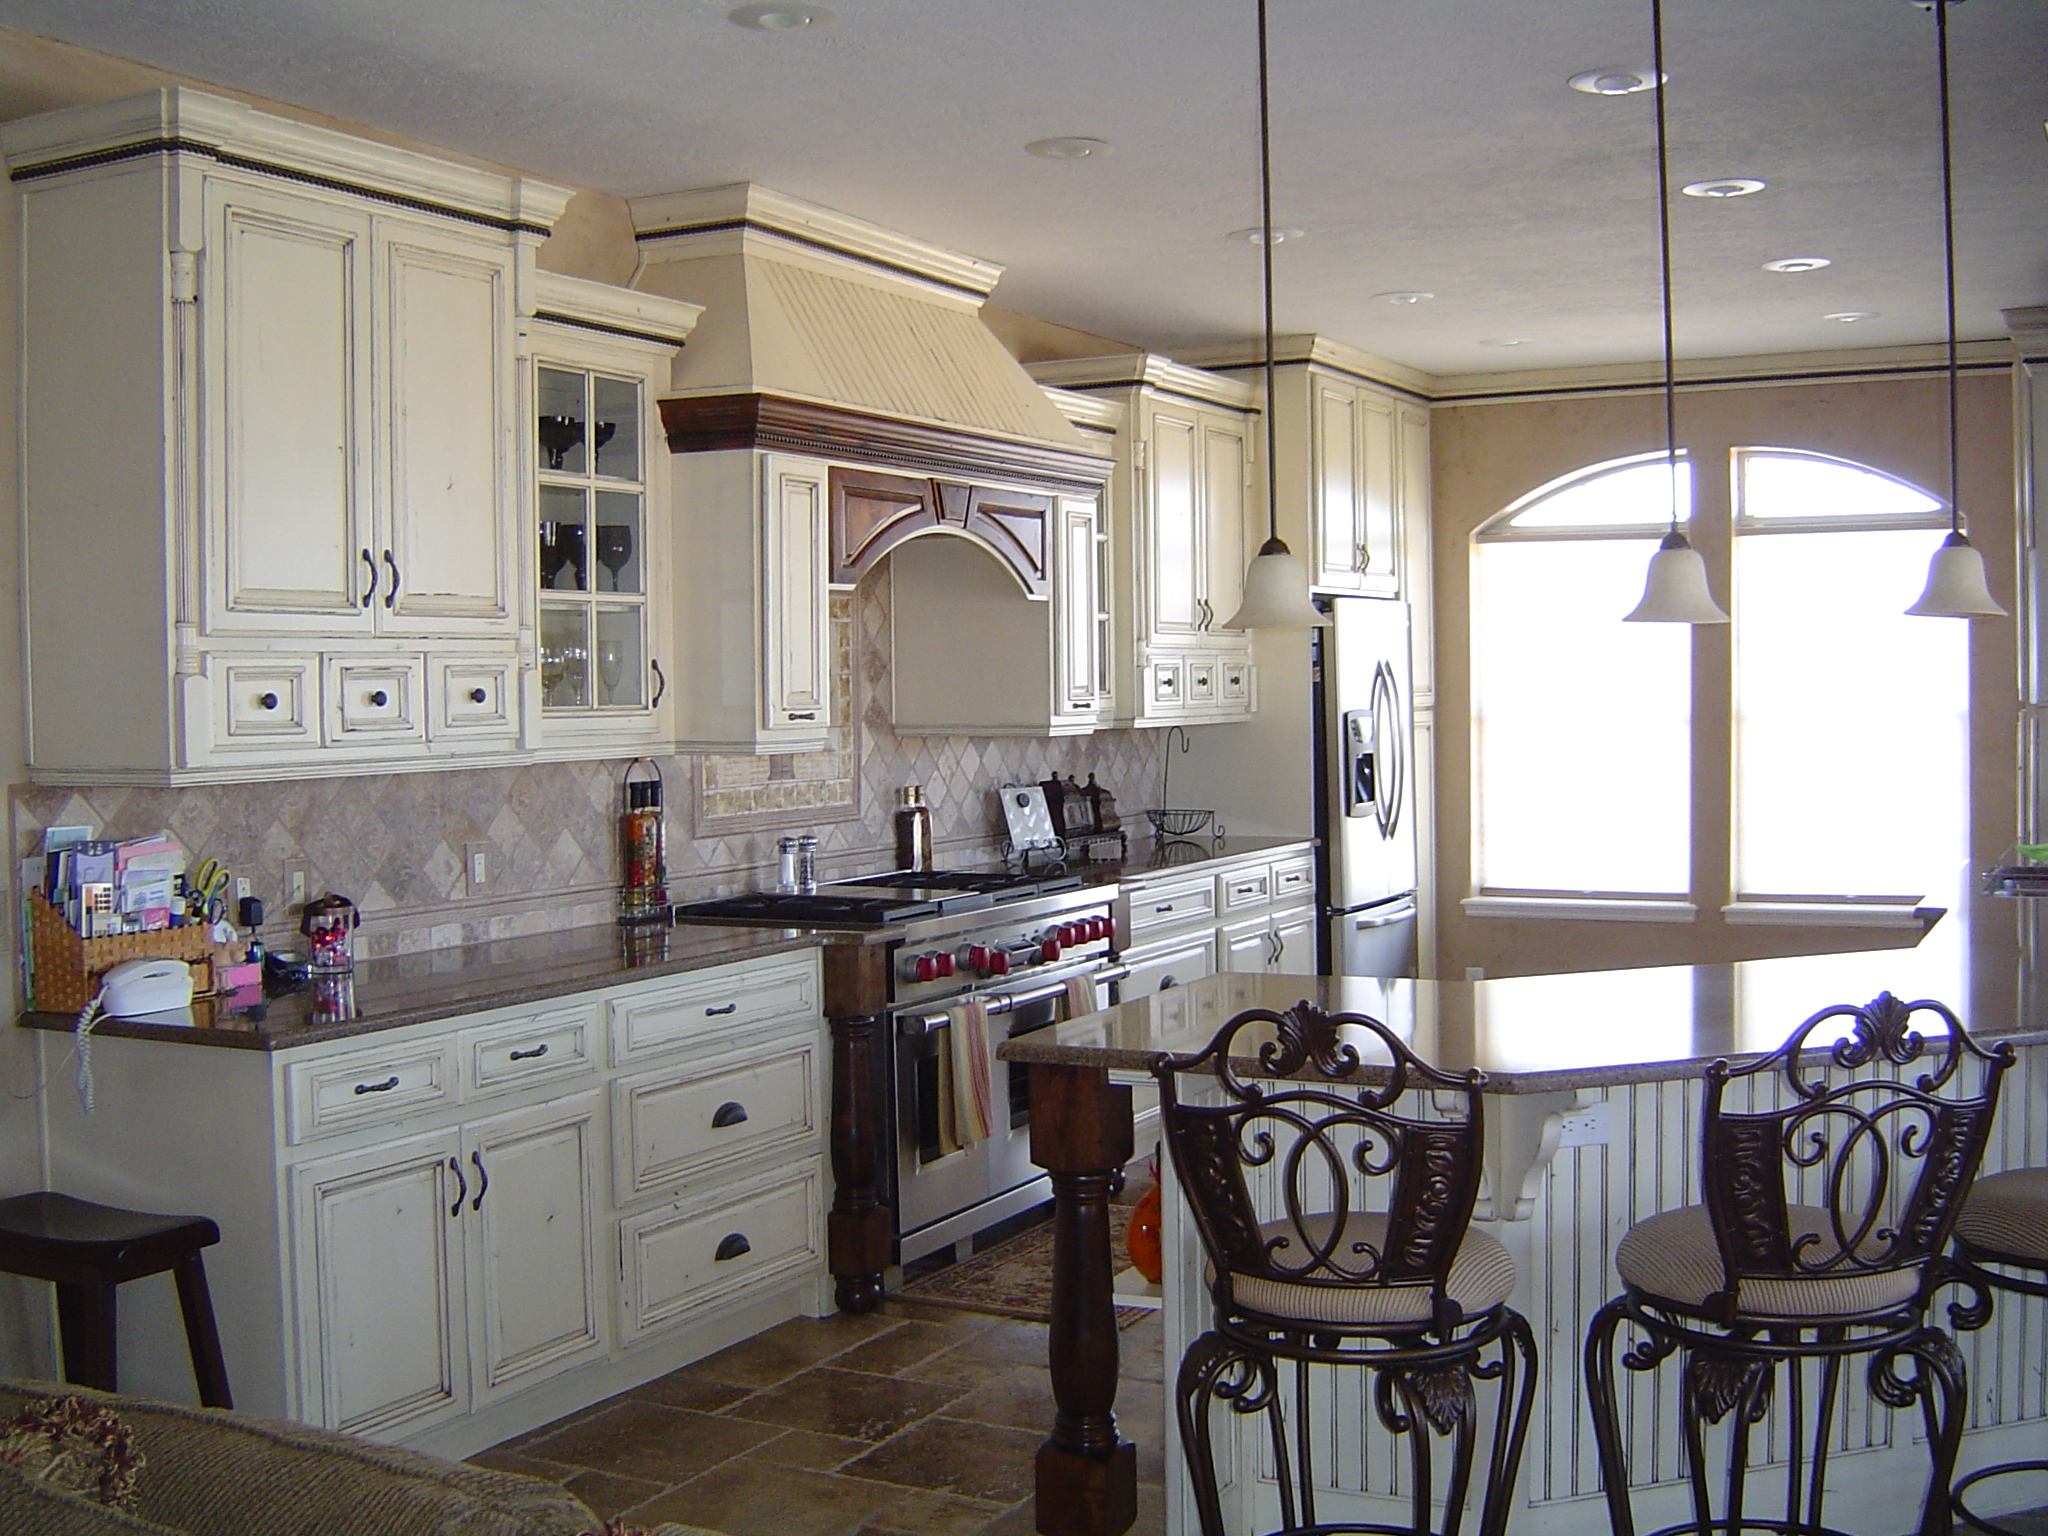 Enchanting French Country Kitchen Cabinets Design Photo French Country Kitchen Cabinets Design Hawk Haven Country Kitchen Cabinet Designs kitchen Country Kitchen Cabinet Designs